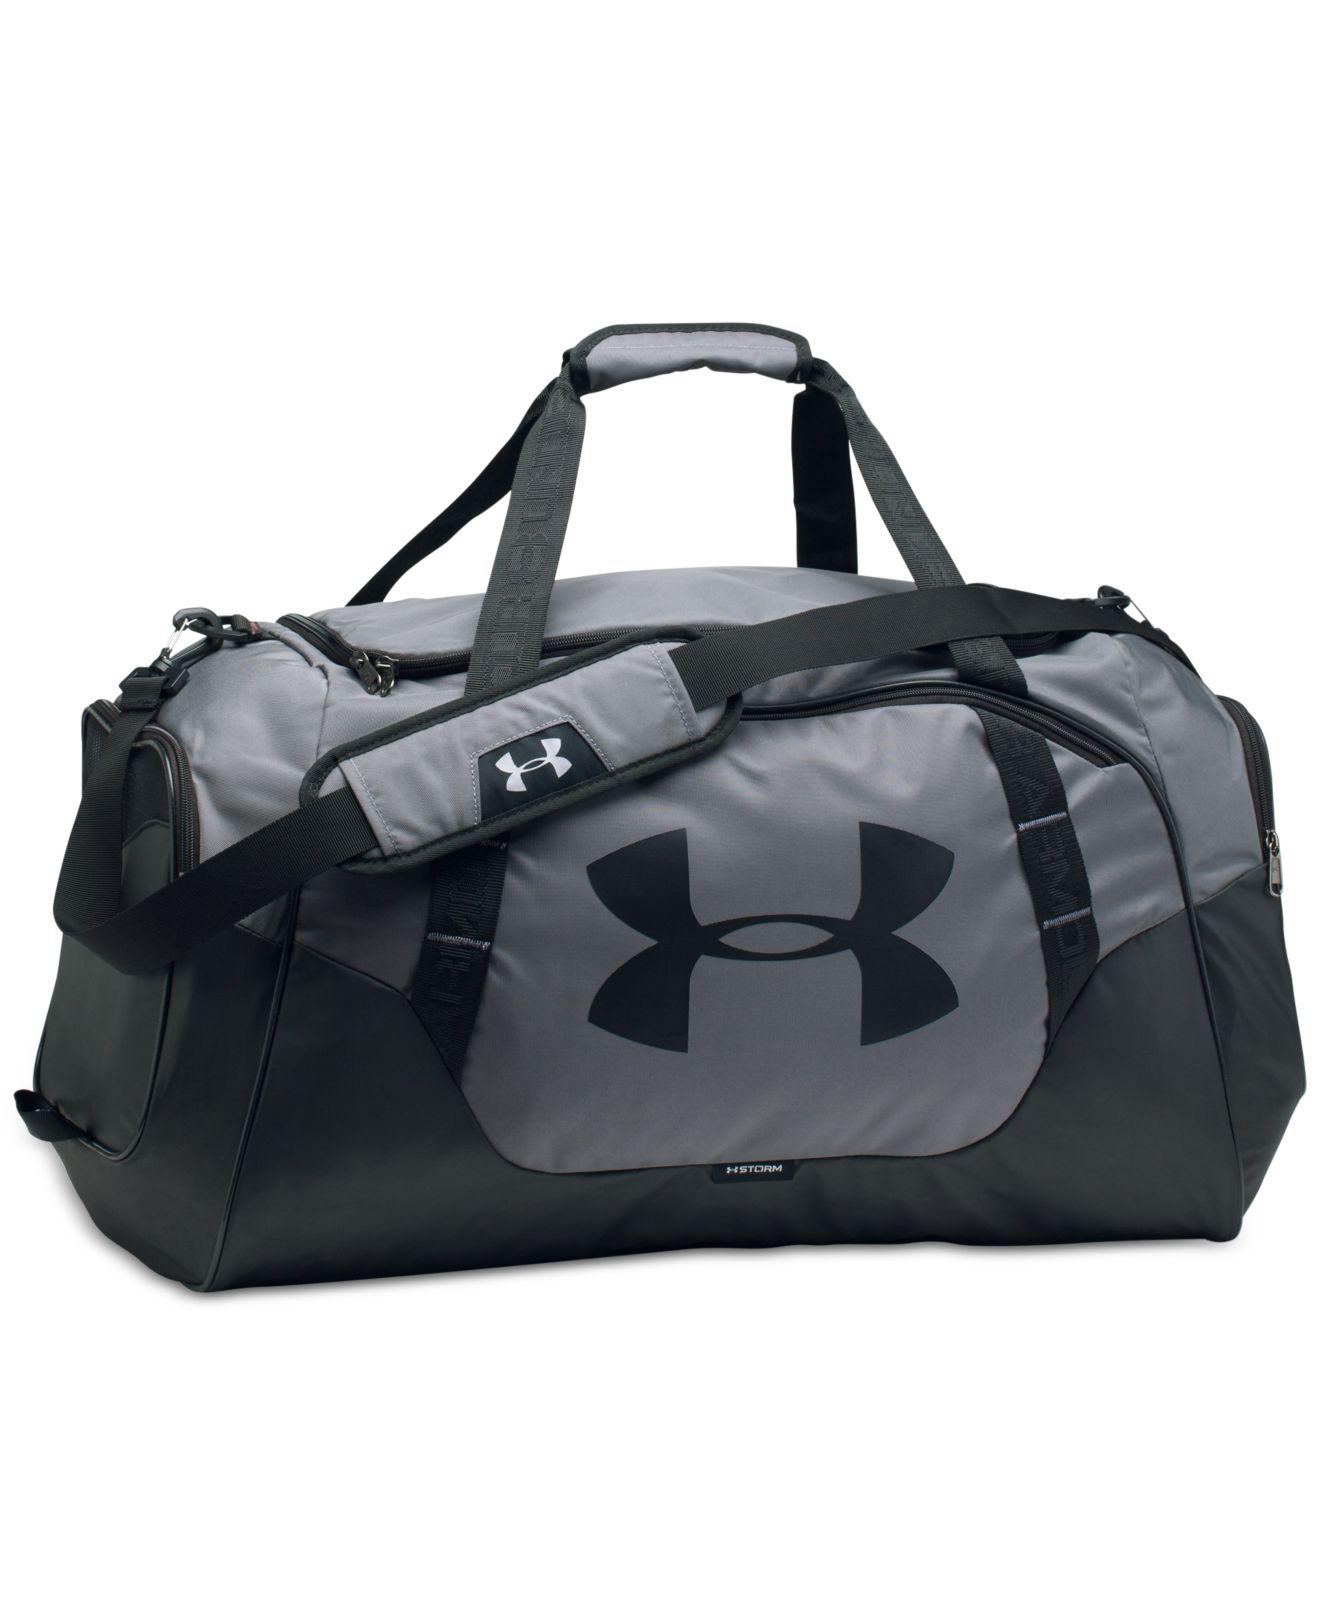 3edde006485a Lyst - Under Armour Undeniable Storm Duffel Bag in Gray for Men